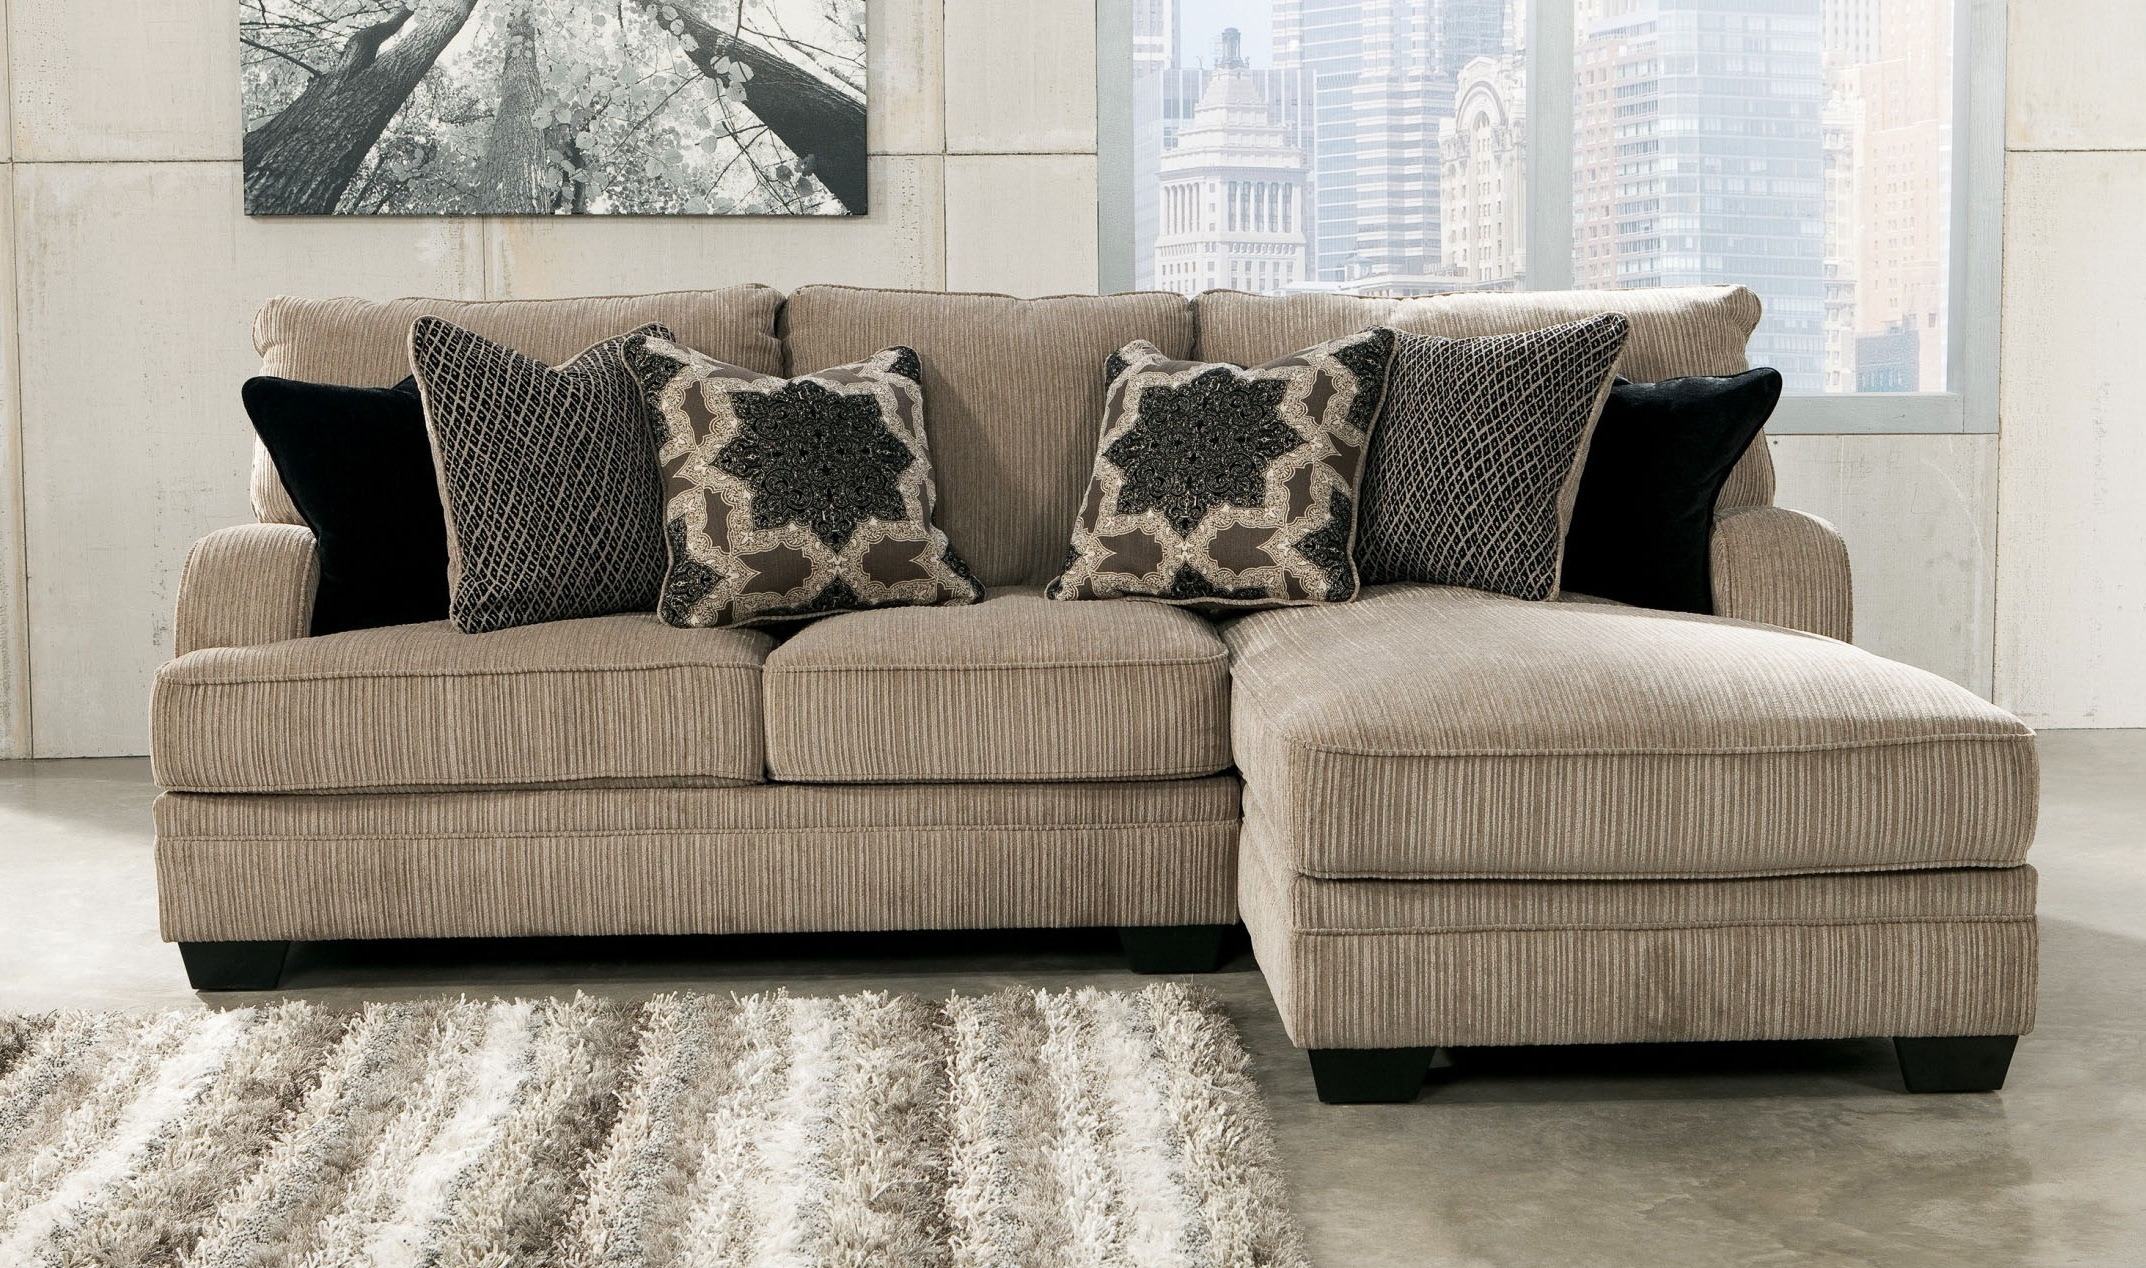 2018 Small Sofas And Chairs For Black Reclining Sectionals Small Sectional Sofa With Recliner (View 1 of 15)